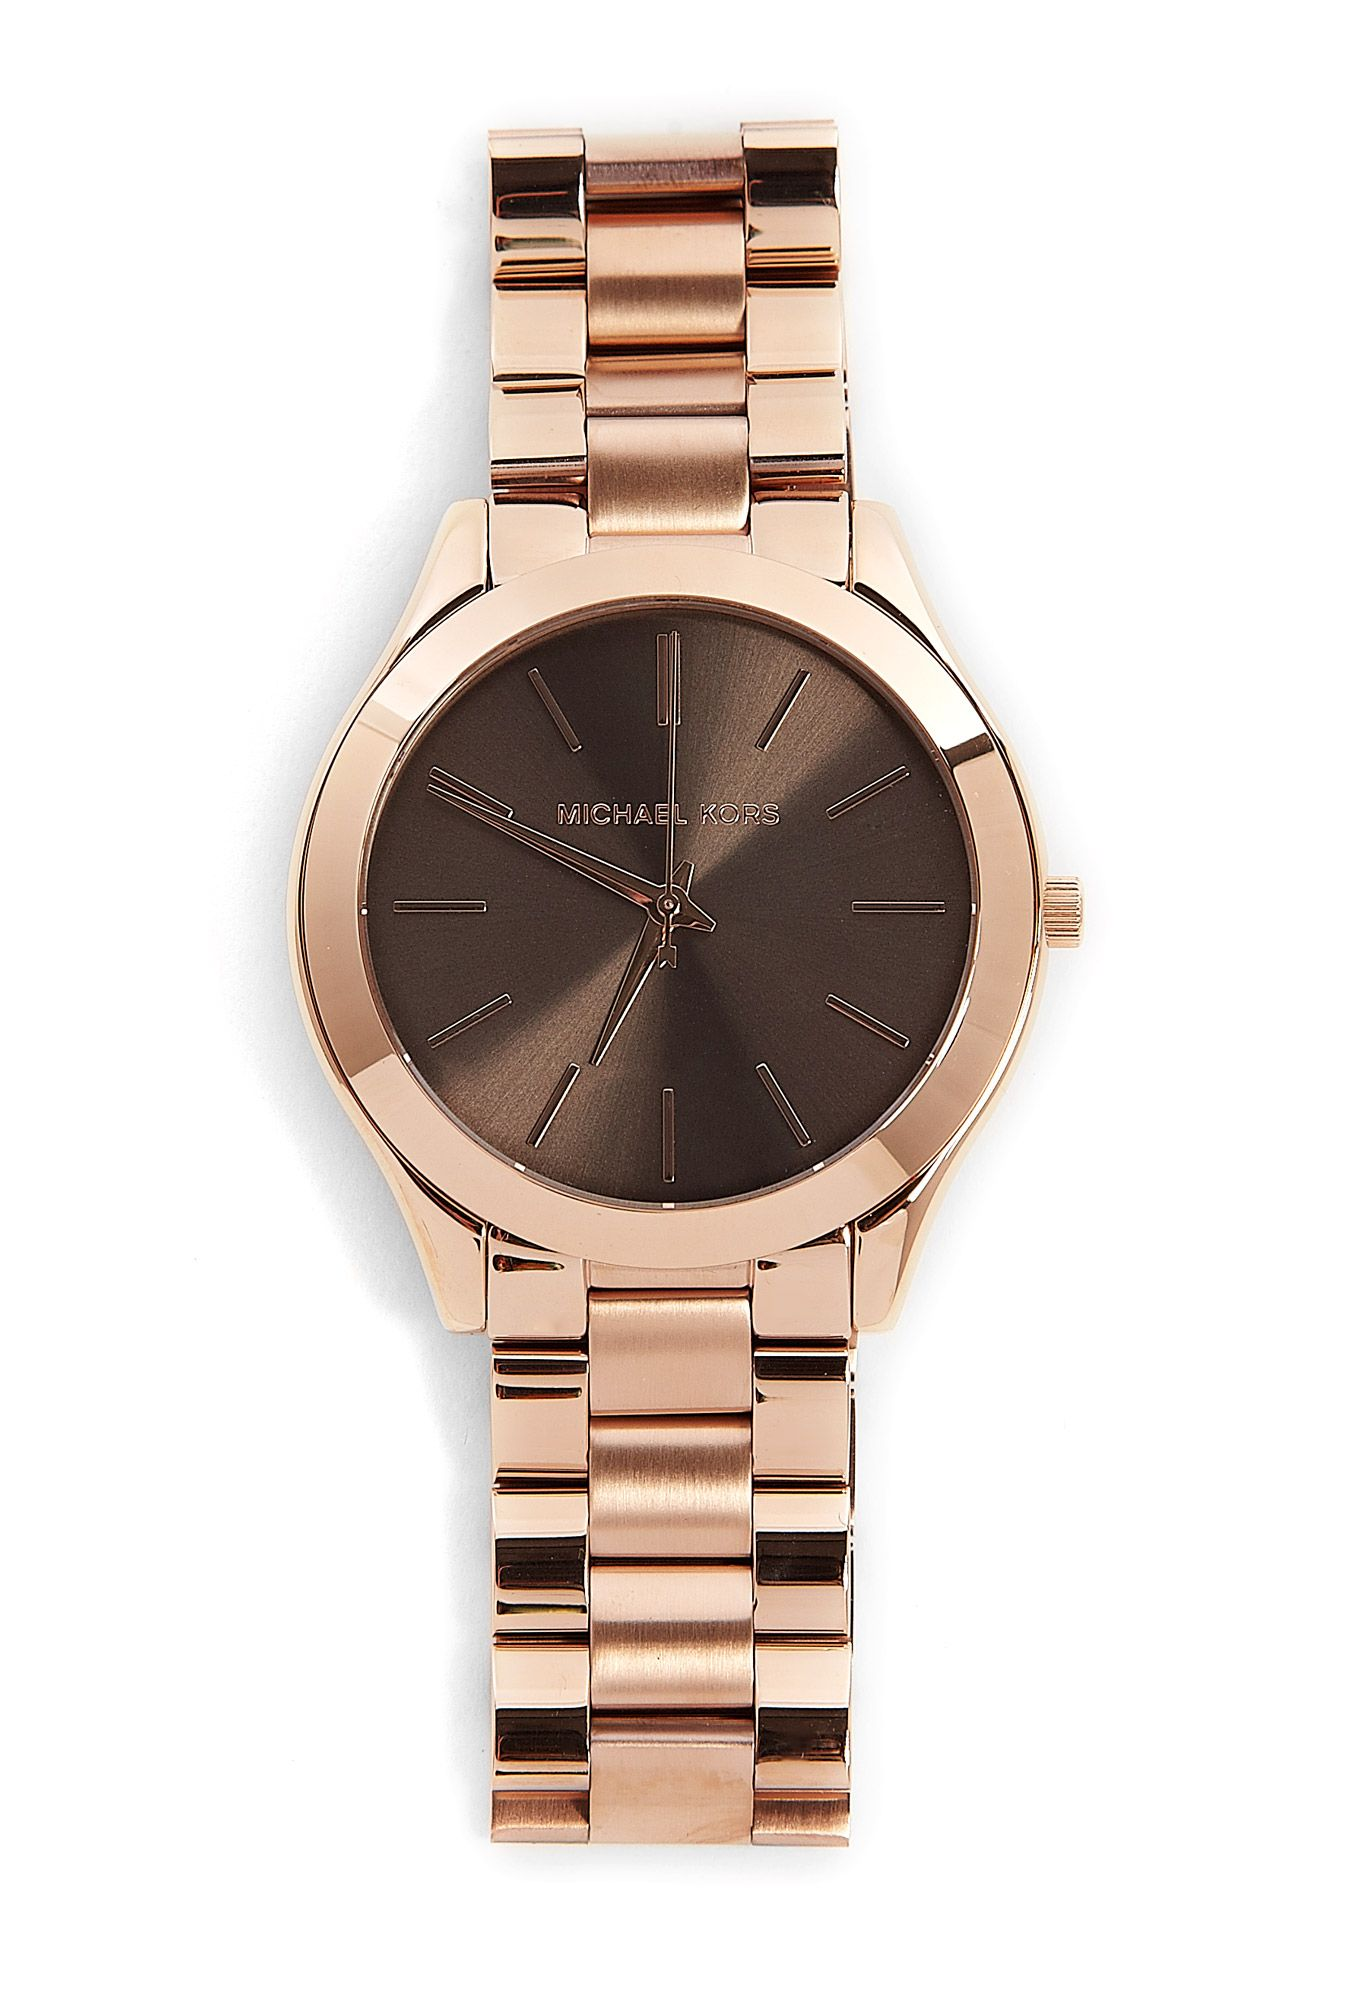 Rose Gold Watch With Espresso Face By Michael Kors Watches 227 Michael Kors Watch Rose Gold Michael Kors Michael Kors Watch